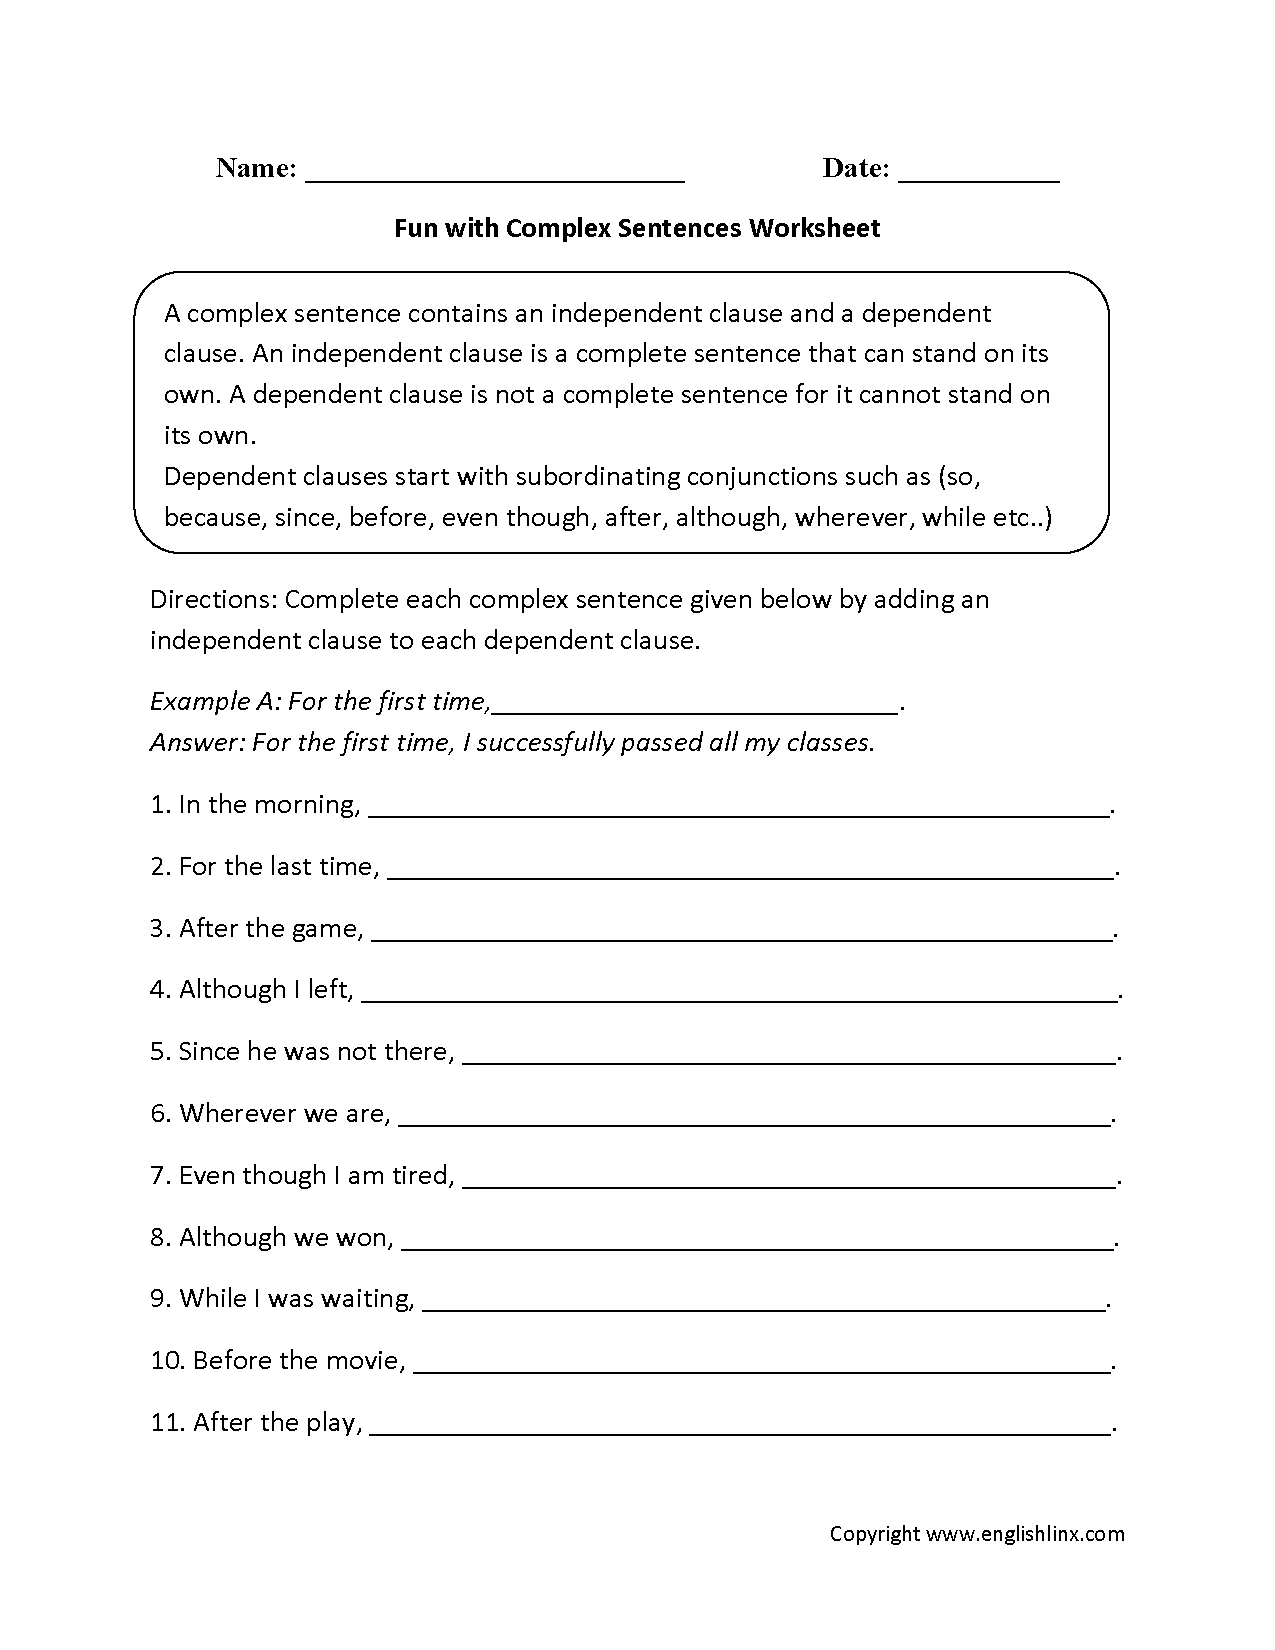 medium resolution of Complex Sentences Worksheets   Fun with Complex Sentences Worksheet    Complex sentences worksheets